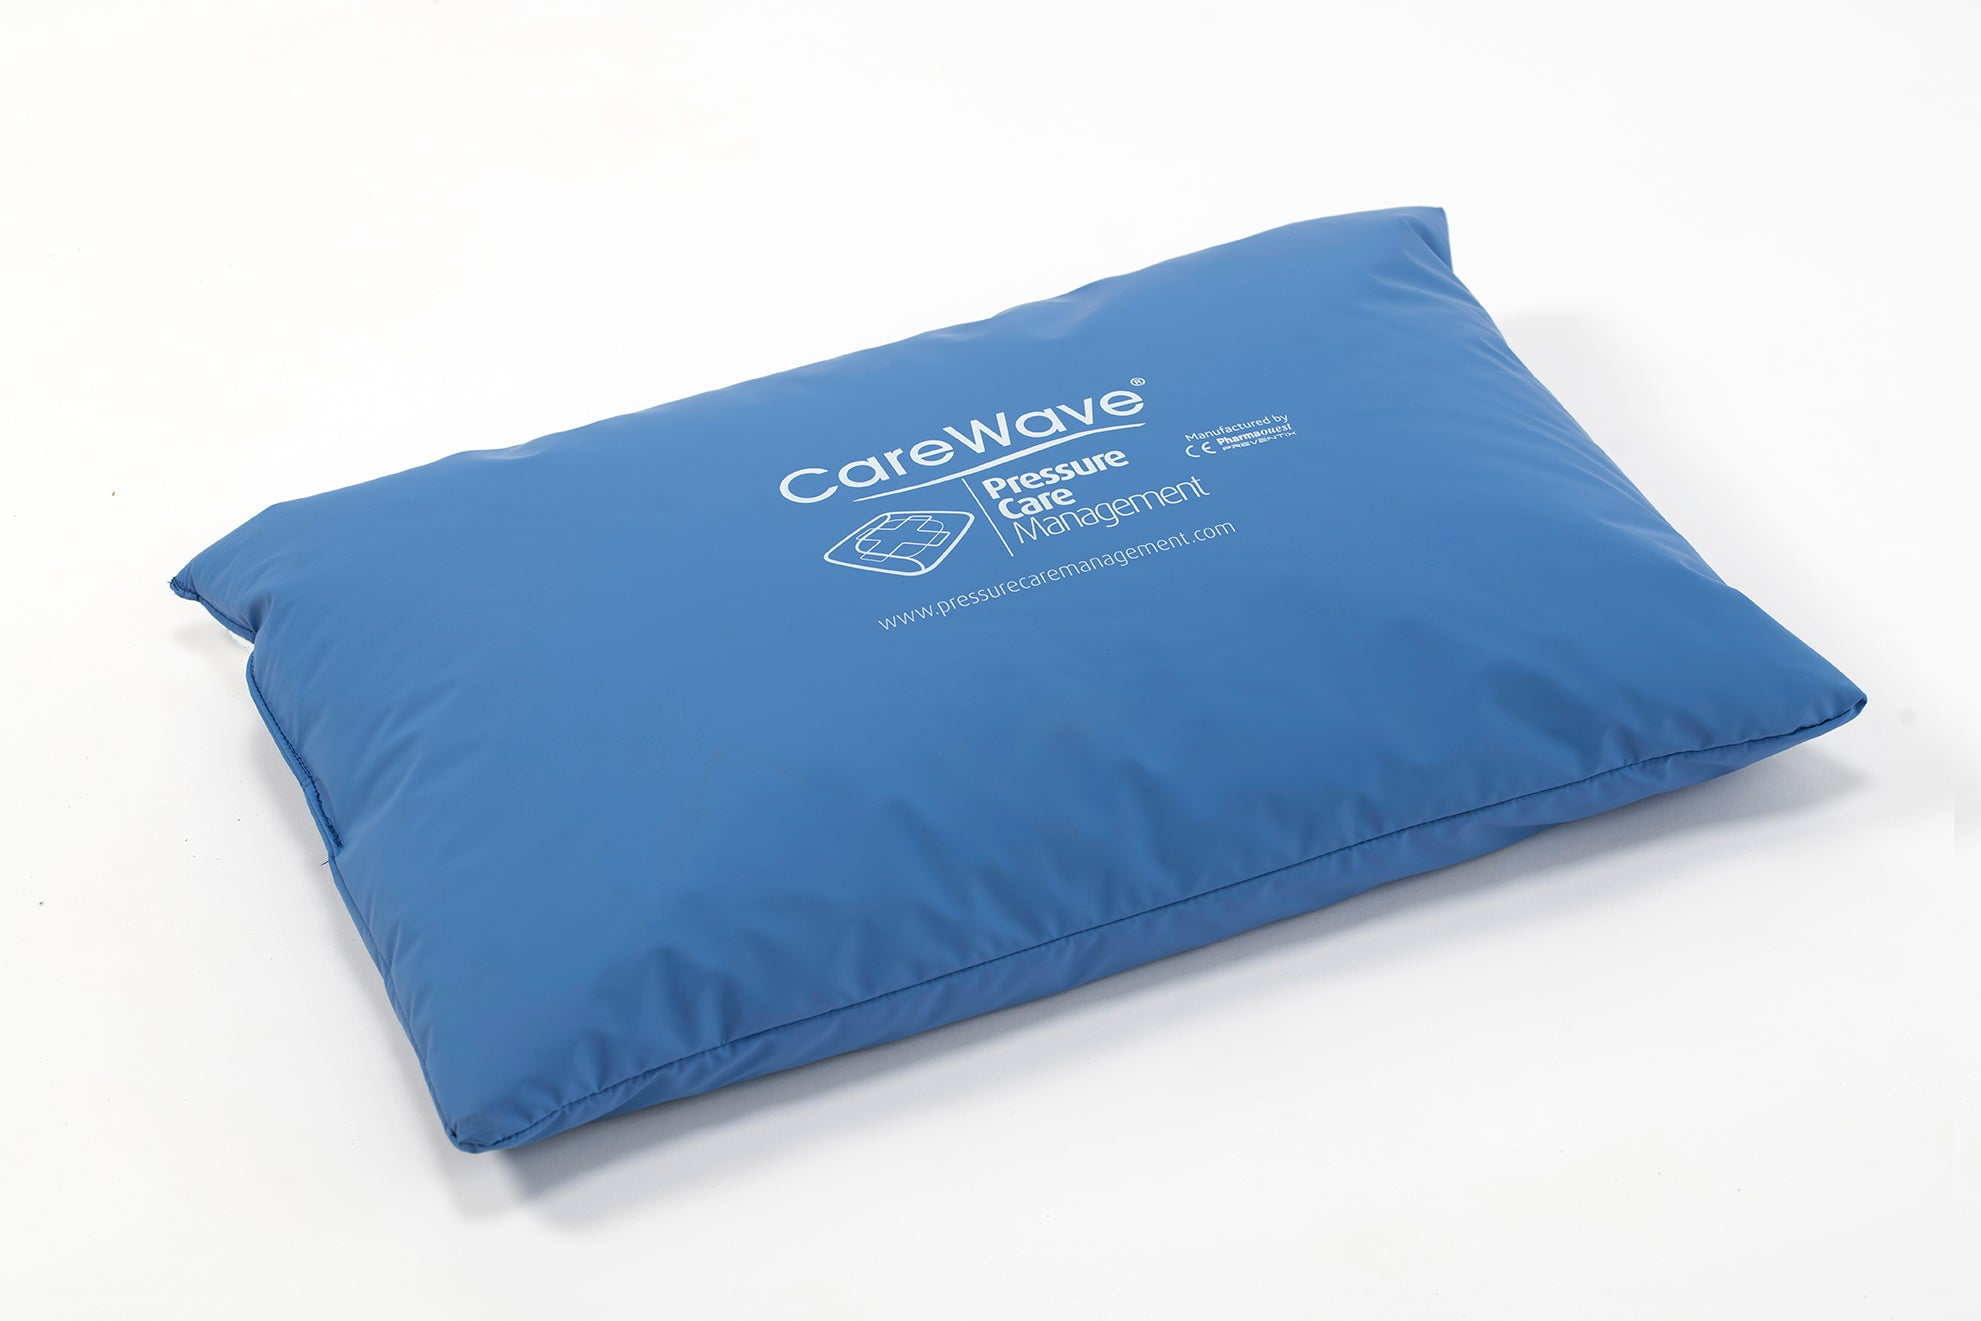 Universal Support Cushion